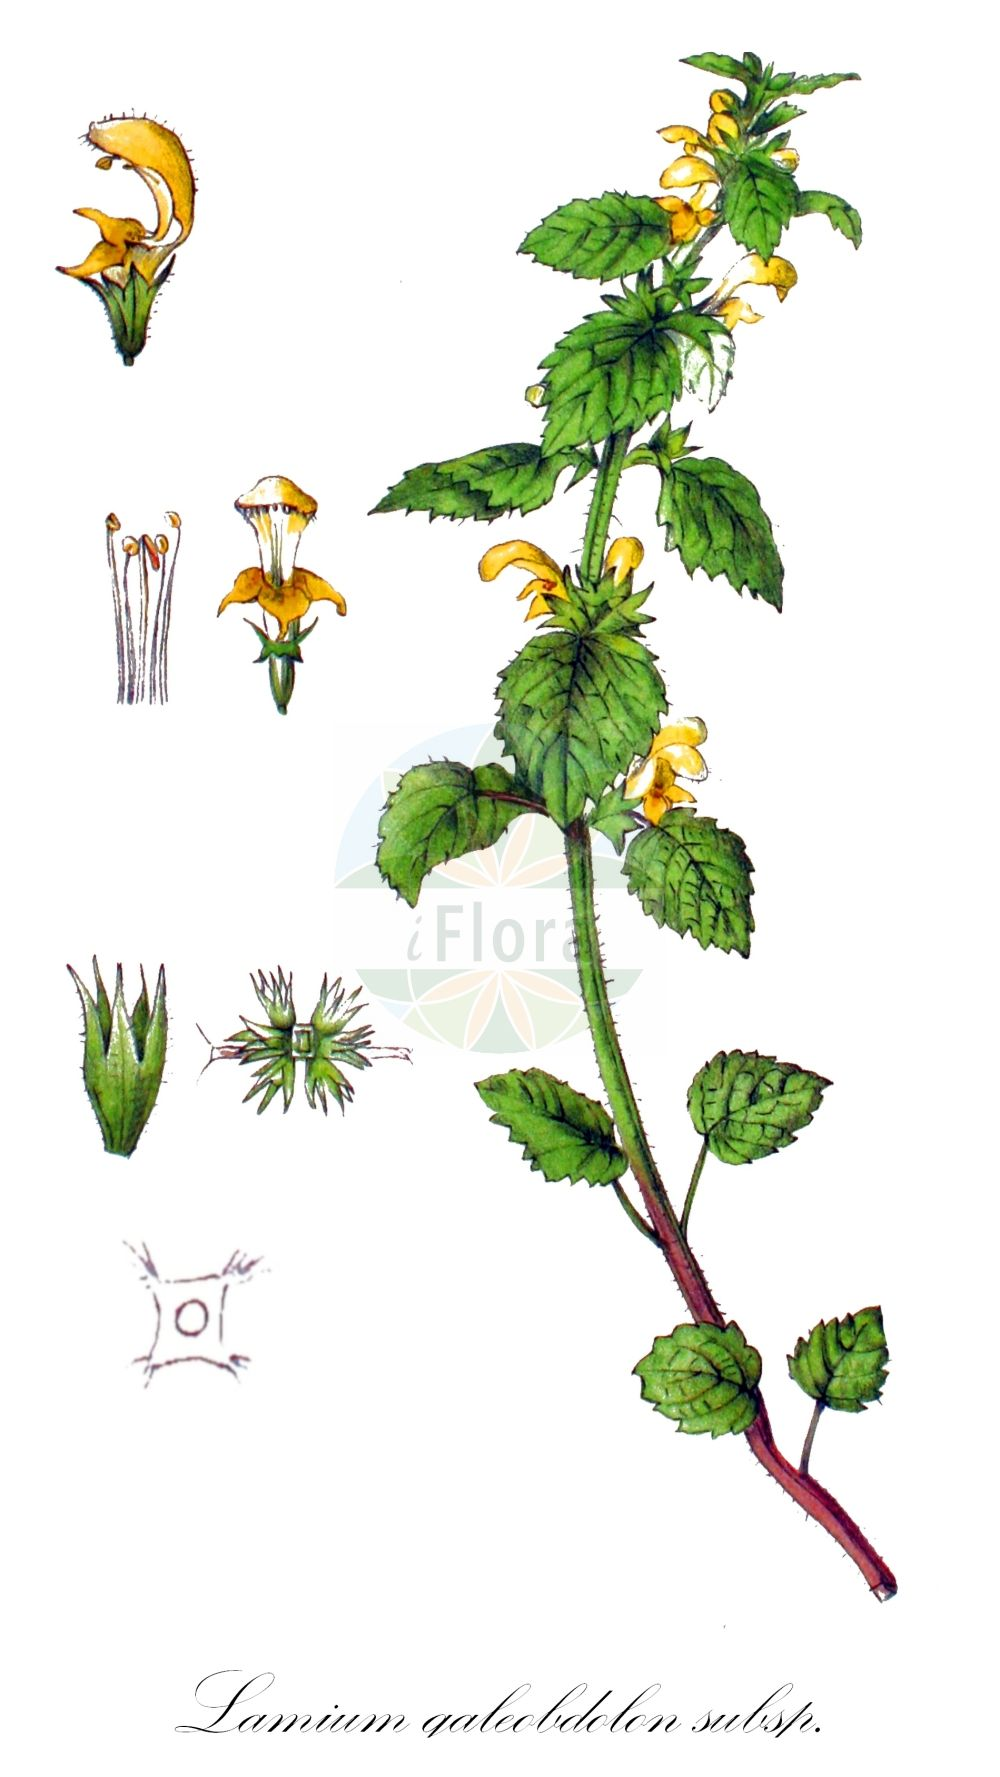 Historische Abbildung von Lamium galeobdolon subsp. montanum (Berg-Goldnessel - Mountain Archangel). Das Bild zeigt Blatt, Bluete, Frucht und Same. ---- Historical Drawing of Lamium galeobdolon subsp. montanum (Berg-Goldnessel - Mountain Archangel).The image is showing leaf, flower, fruit and seed.(Lamium galeobdolon subsp. montanum,Berg-Goldnessel,Mountain Archangel,Pollichia montana,Endtmanns Goldnessel,Lamium,Taubnessel,Deadnettle,Lamiaceae,Lippenbluetengewaechse;Lippenbluetler,Nettle family,Blatt,Bluete,Frucht,Same,leaf,flower,fruit,seed,Tackenberg)